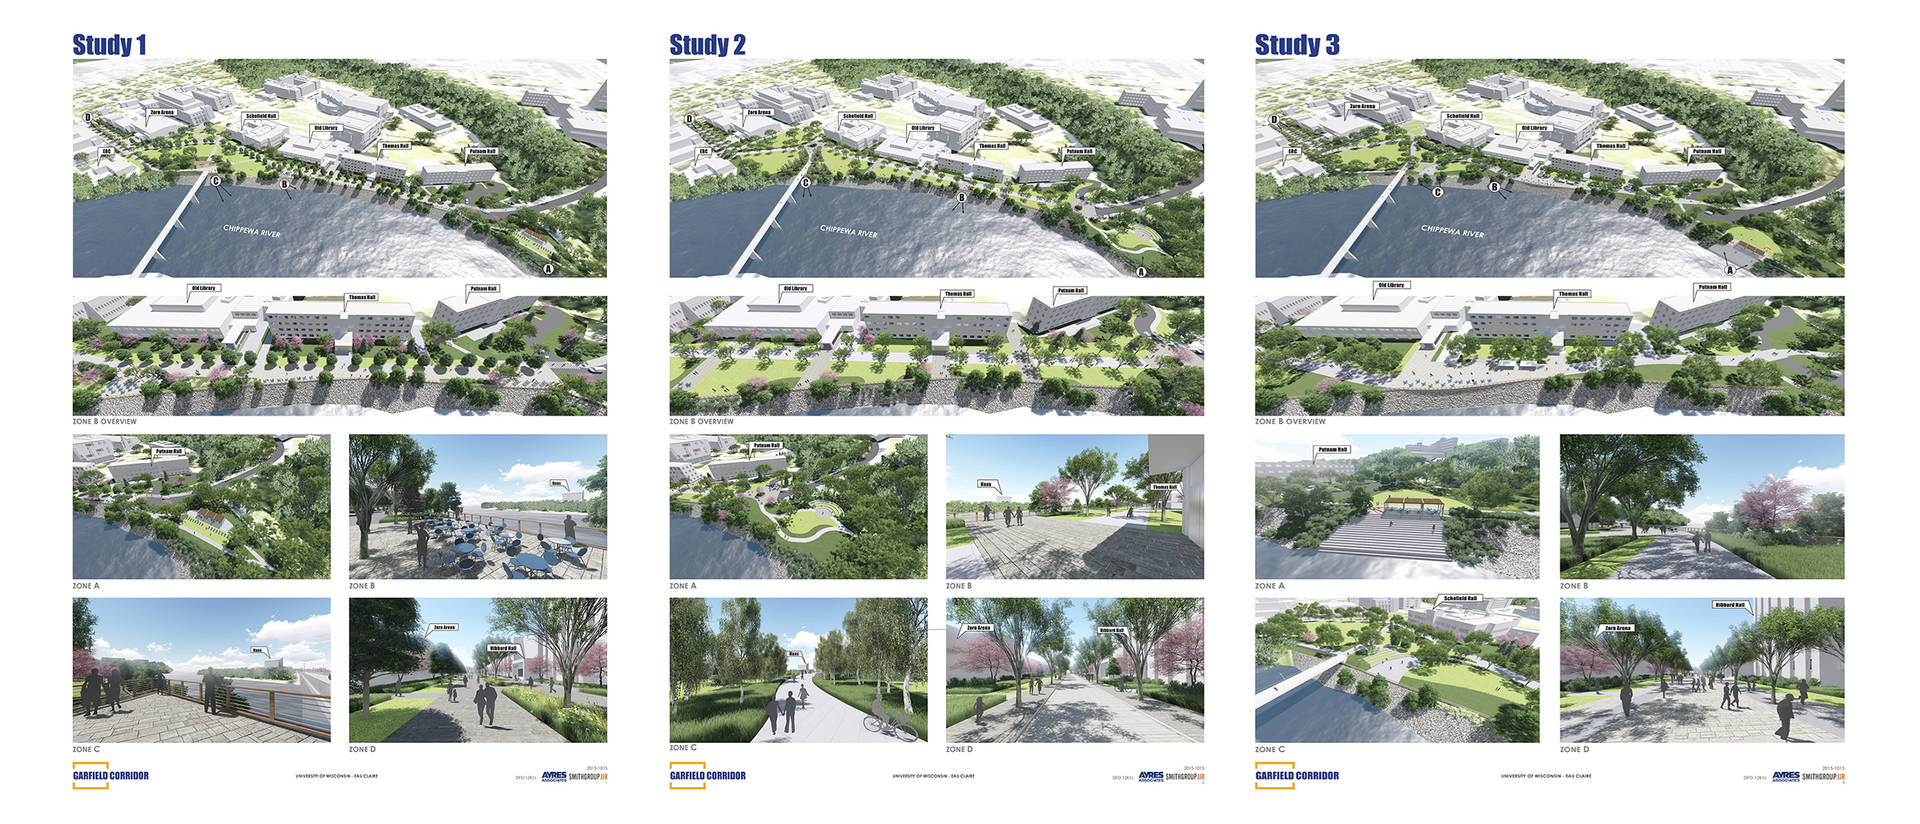 Garfield Ave project studies 1-3